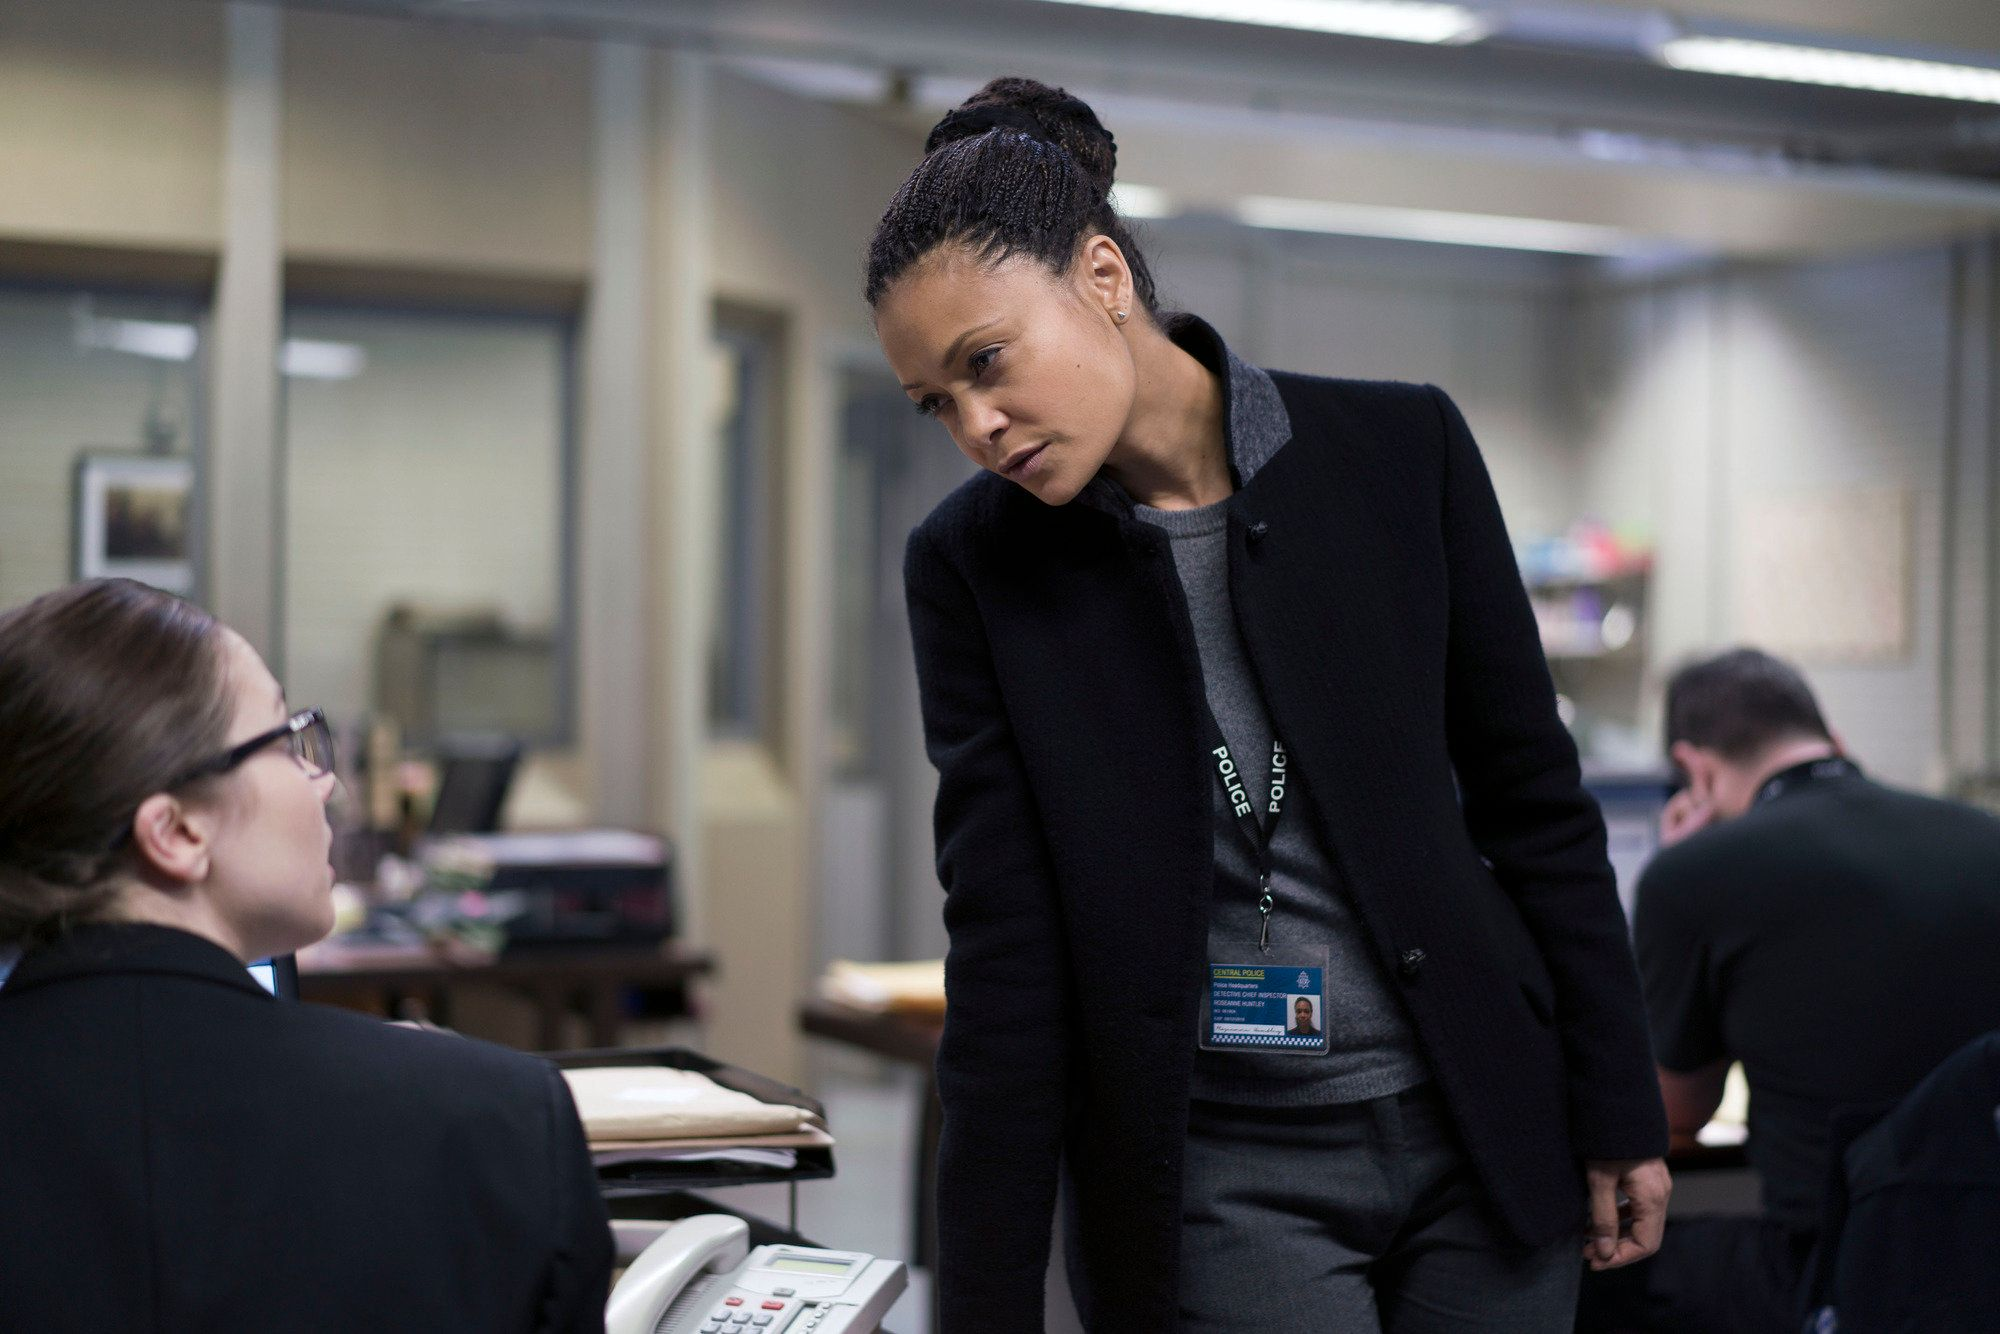 Roz Huntley (Thandie Newton) successfully turned the tables on